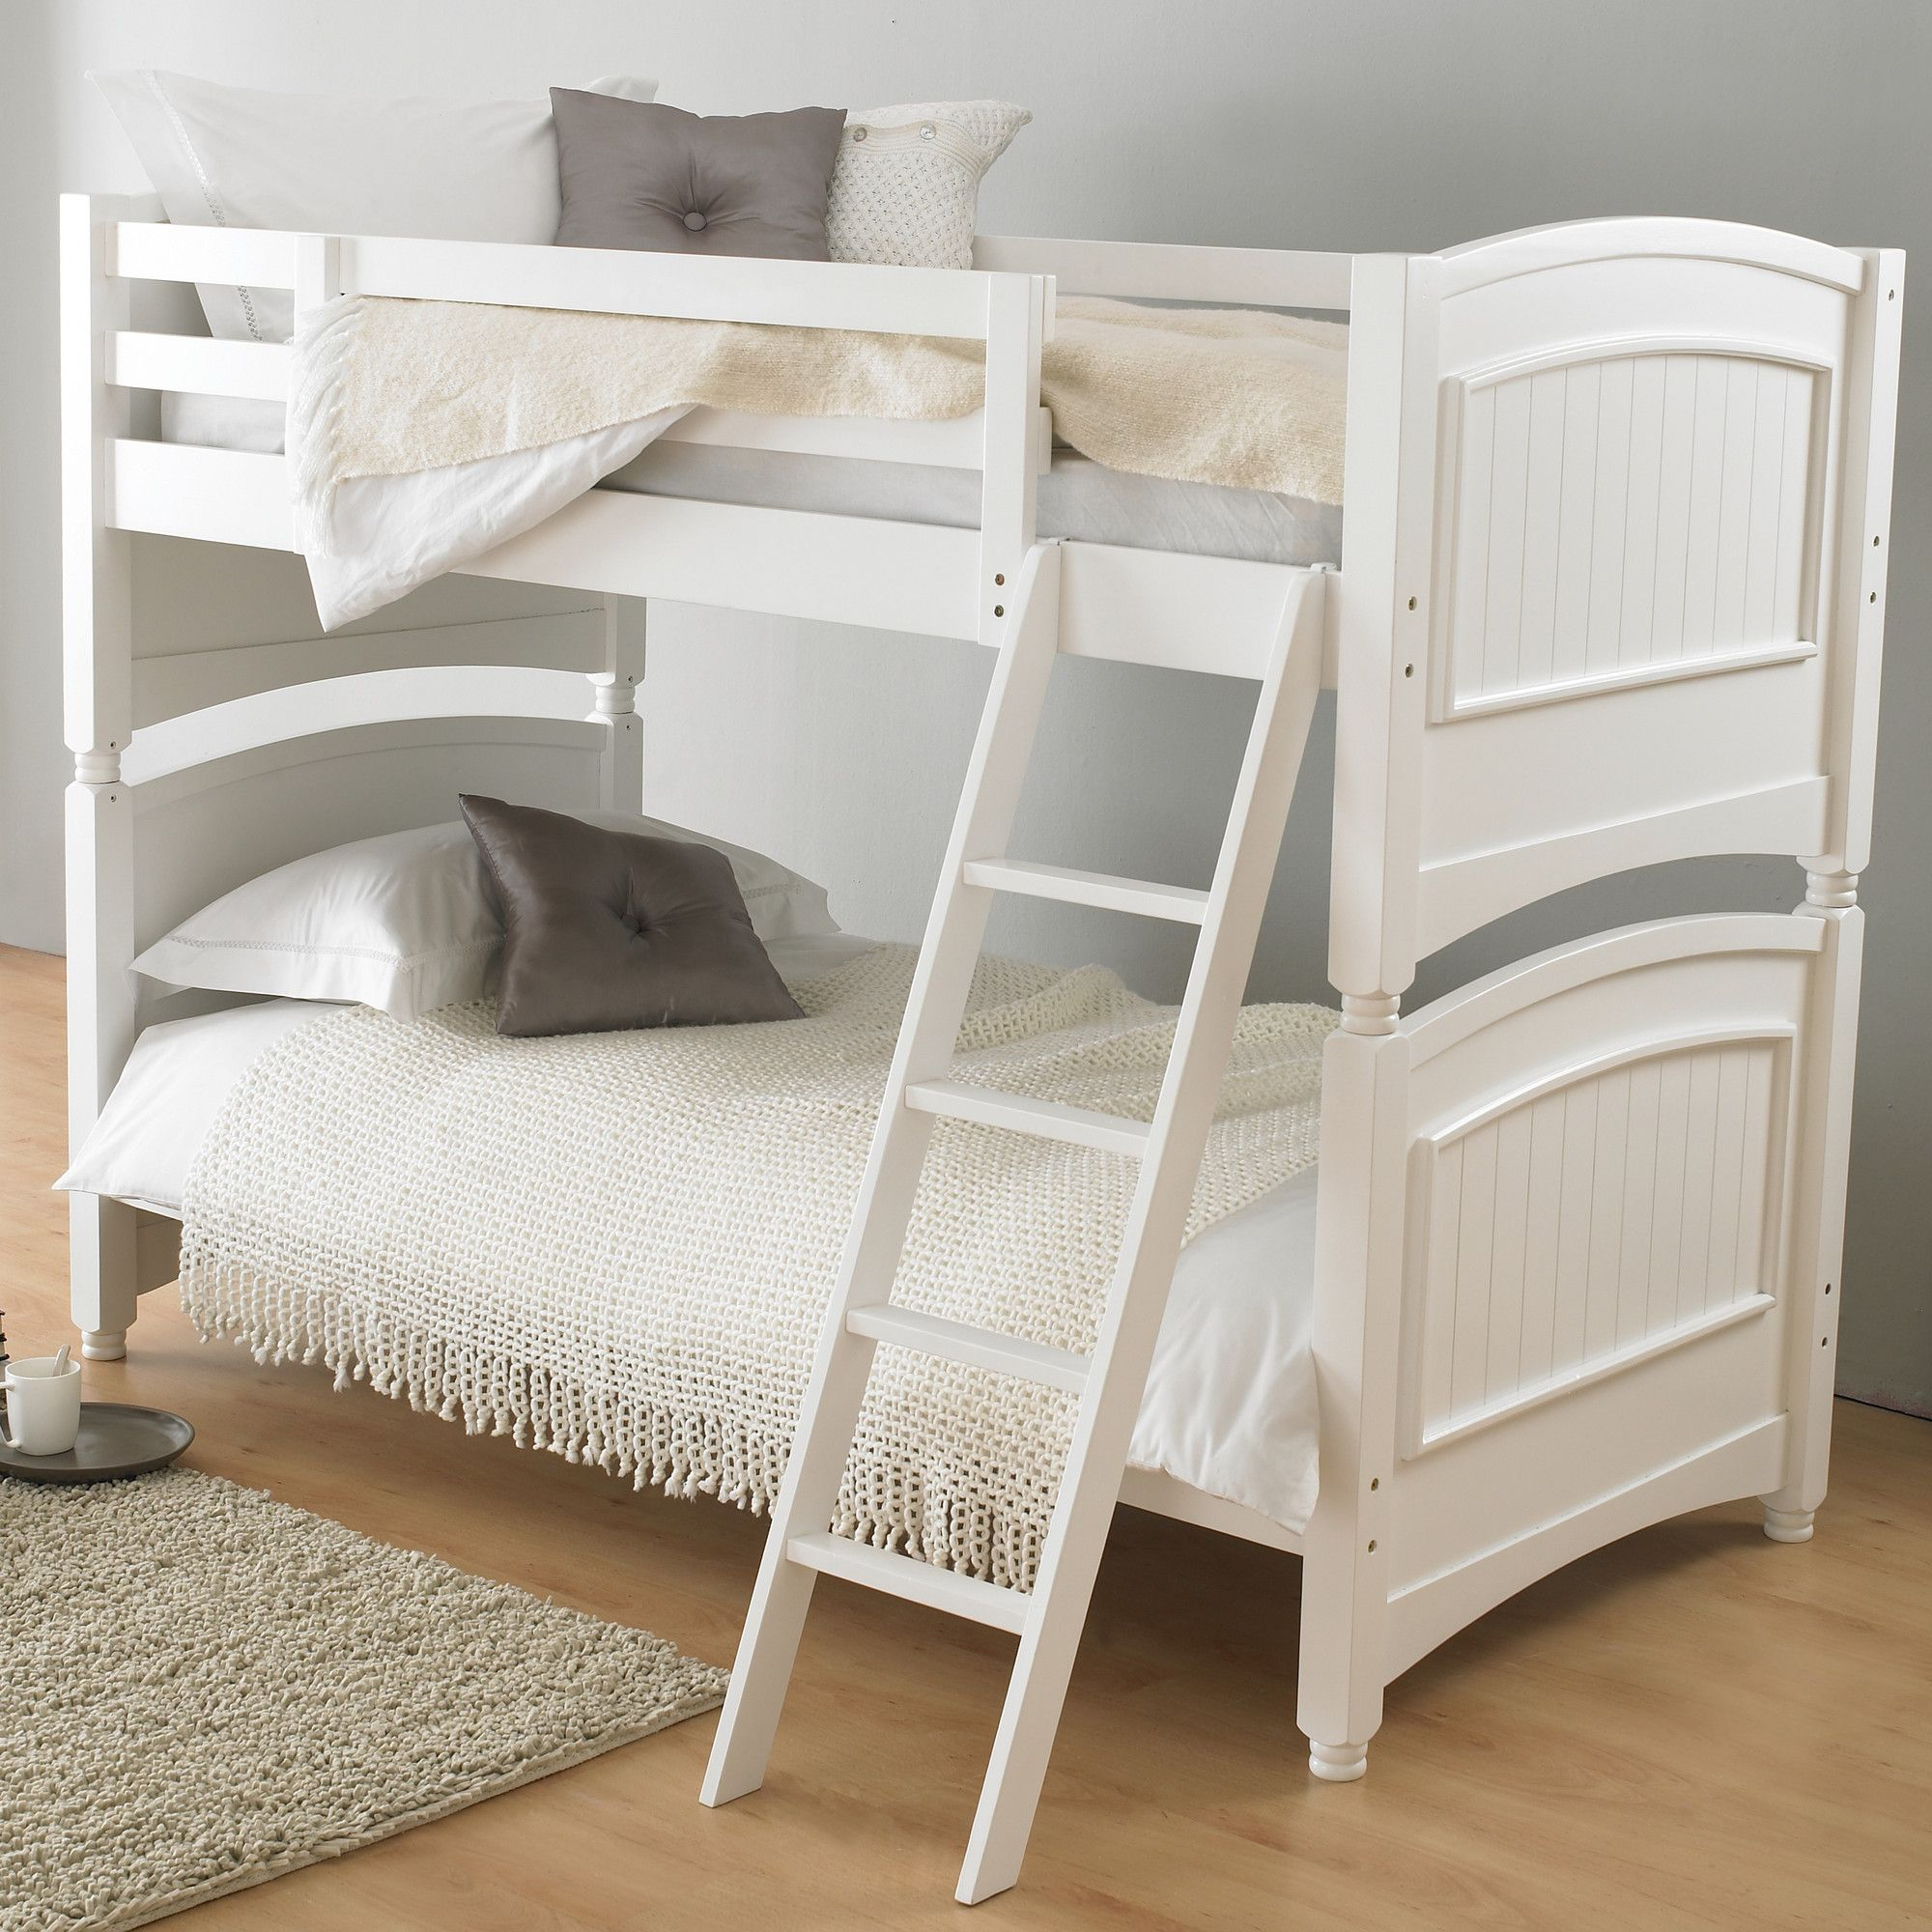 Hyder Colonial Bunk Bed Frame at Tesco Direct